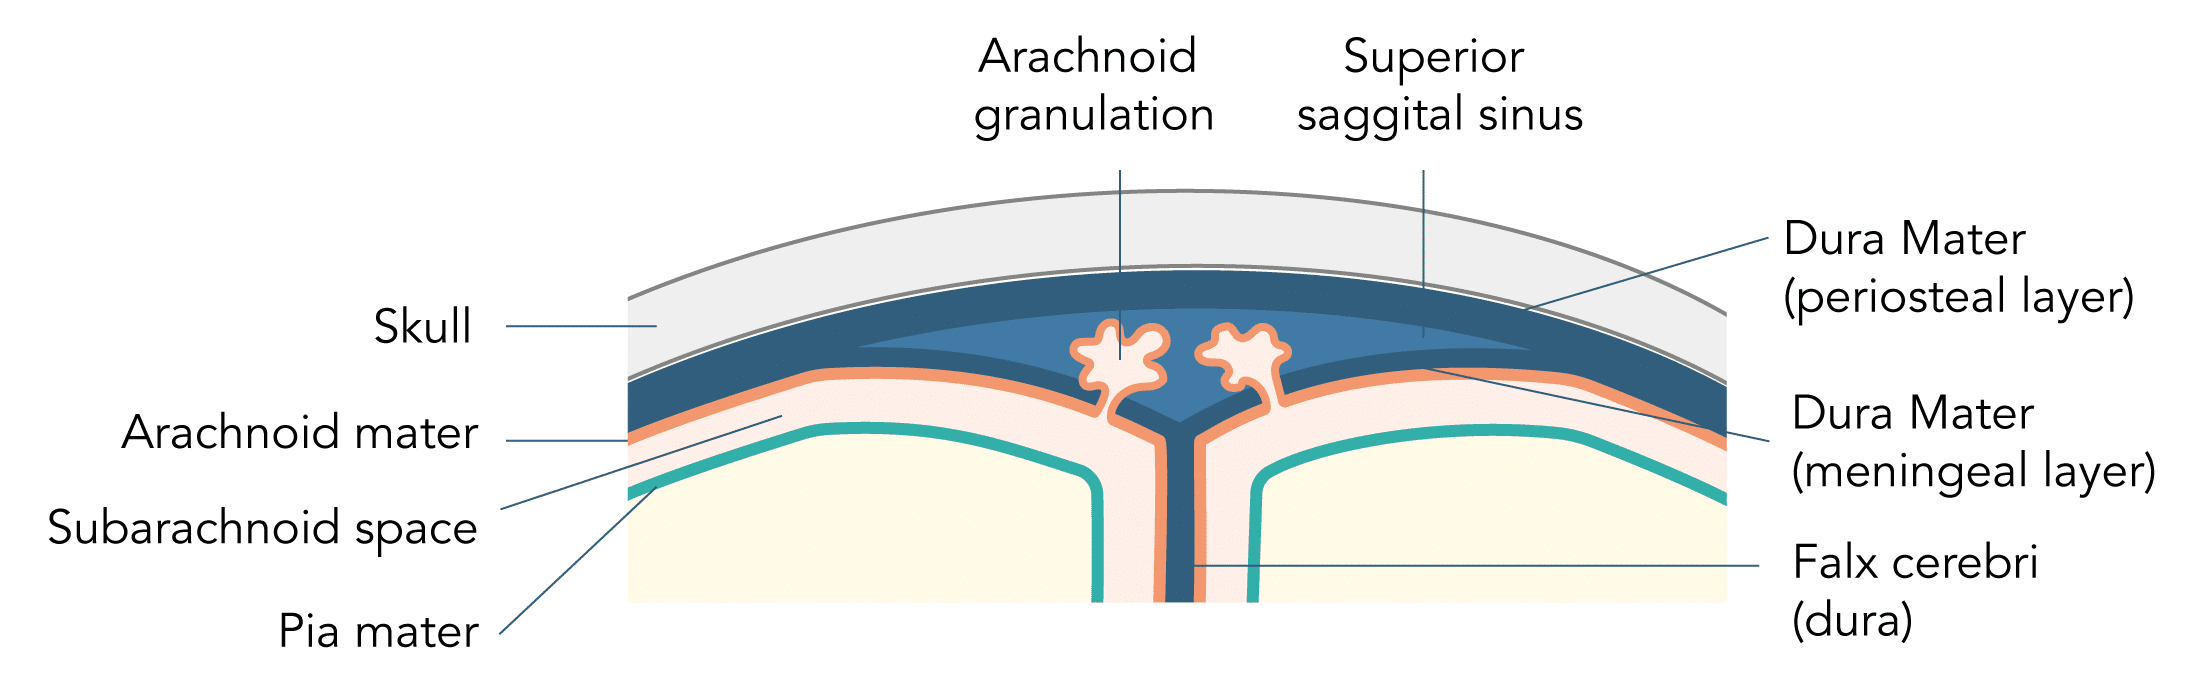 Structure of the arachnoid granulations